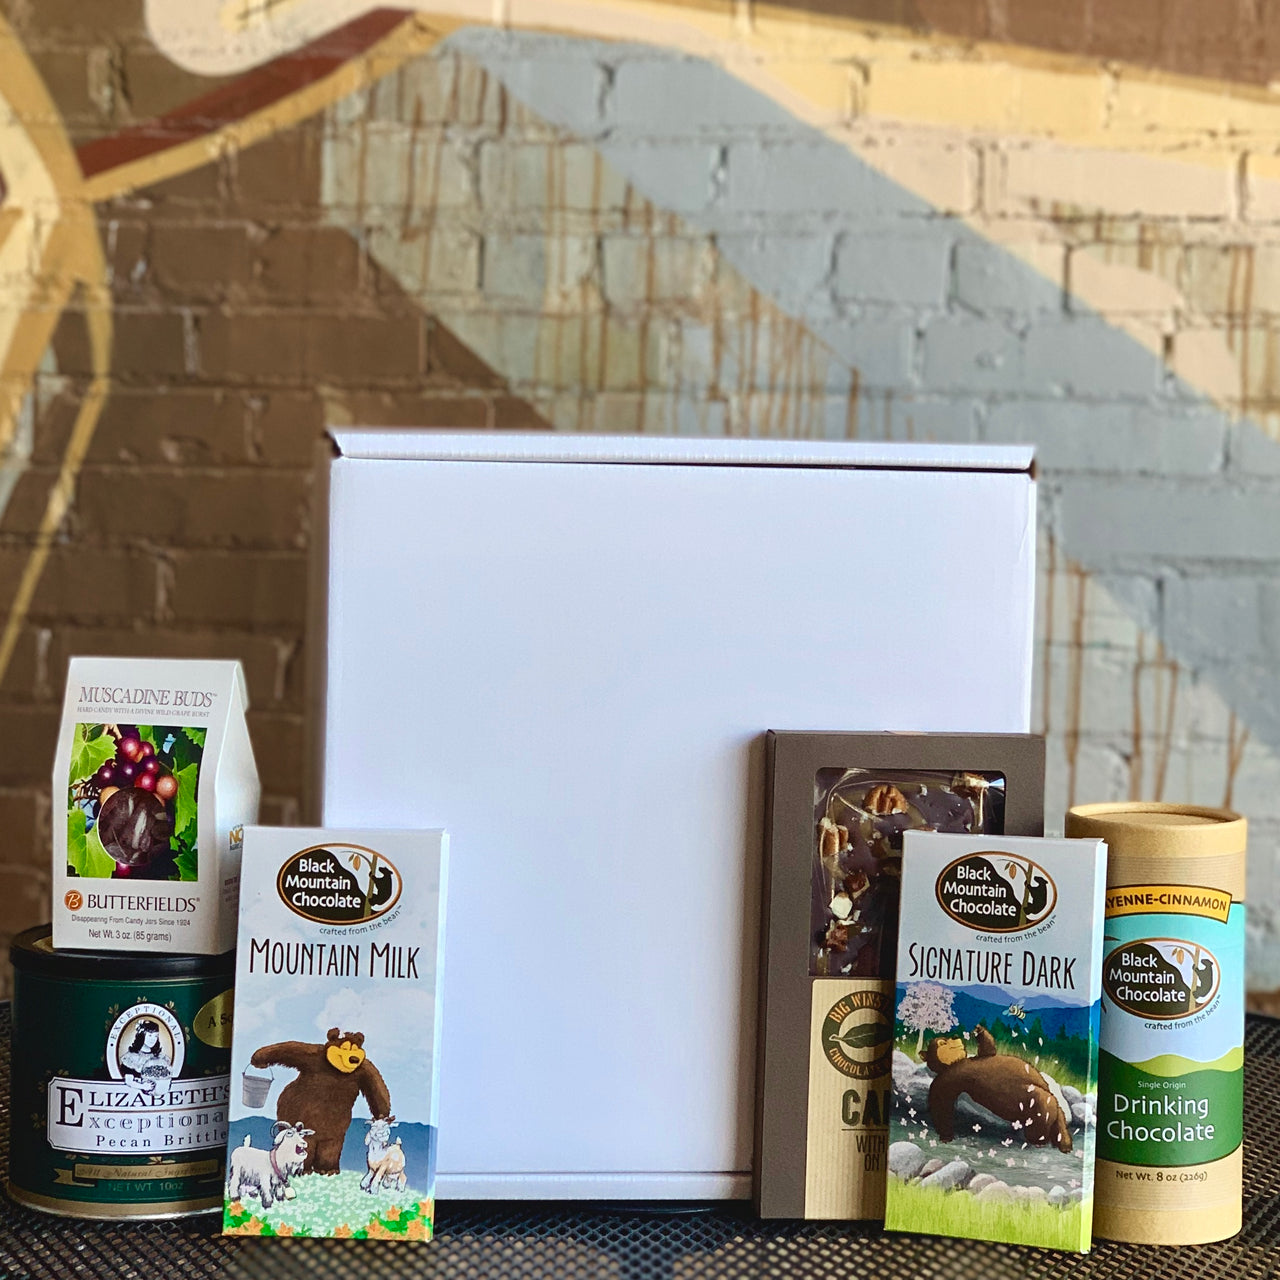 Black Mountain Chocolate makes the BEST gift!  Customize your own gift box by filling it with your BMC favorites- hand crafted chocolate, local NC treats, Dynamite Roasted Coffee or Chad's Chai!  You decide the contents, price point, and what will best please your friends and family! All products local to Winston-Salem, or North Carolina.